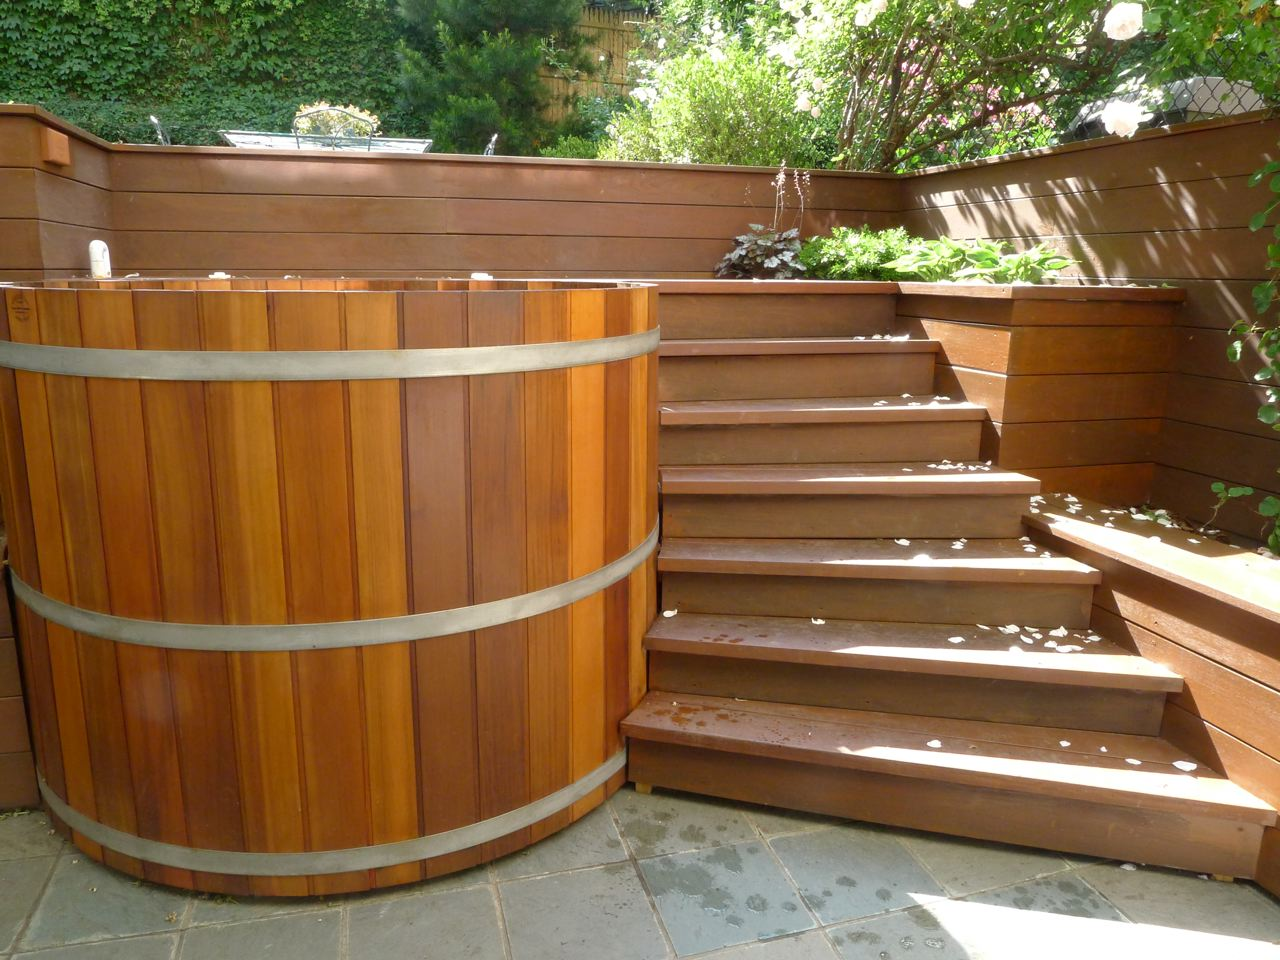 hot-tub-and-stairs_11057598503_o